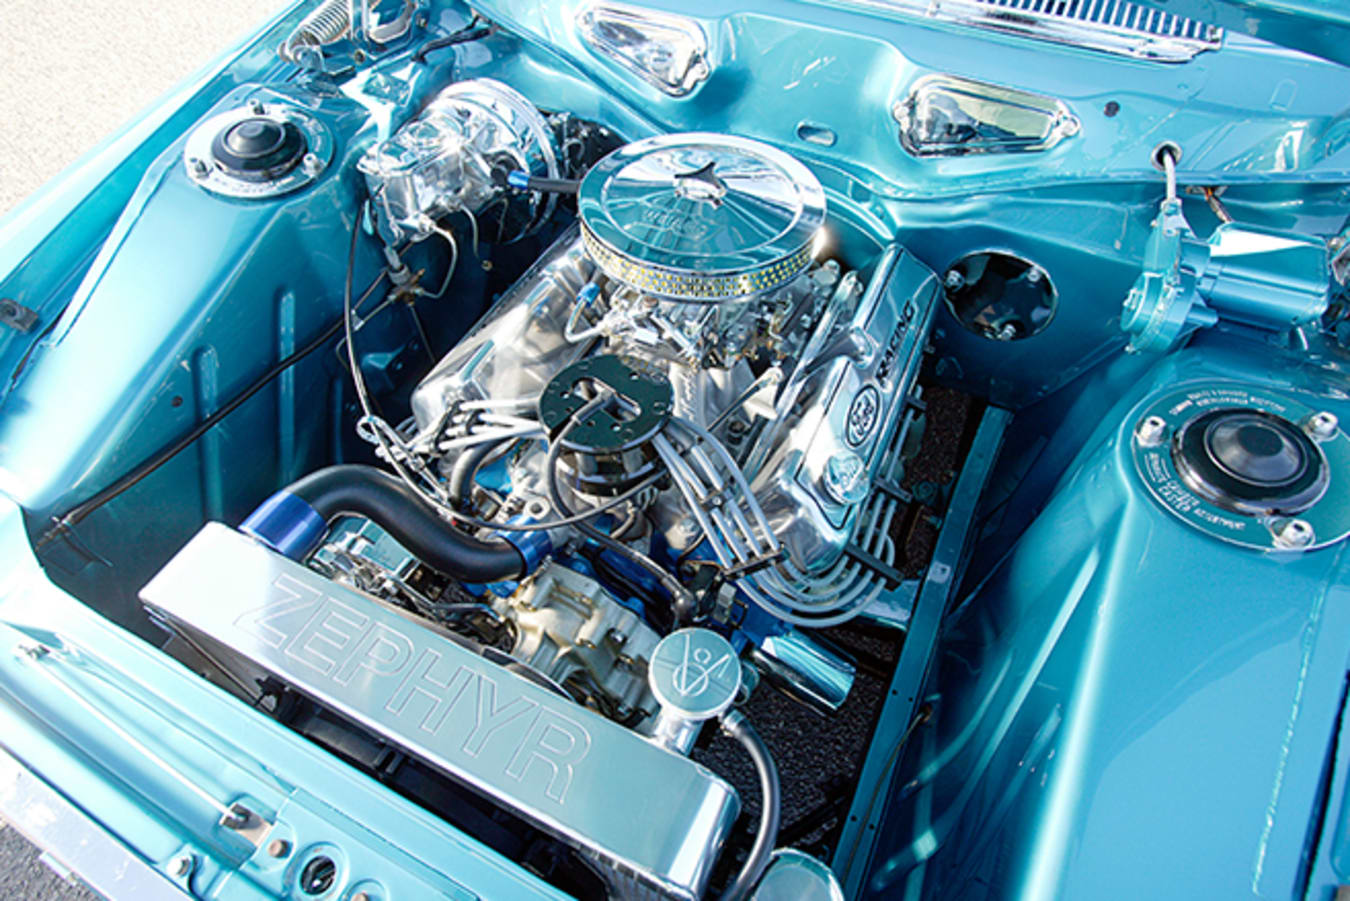 Ford small-block engine